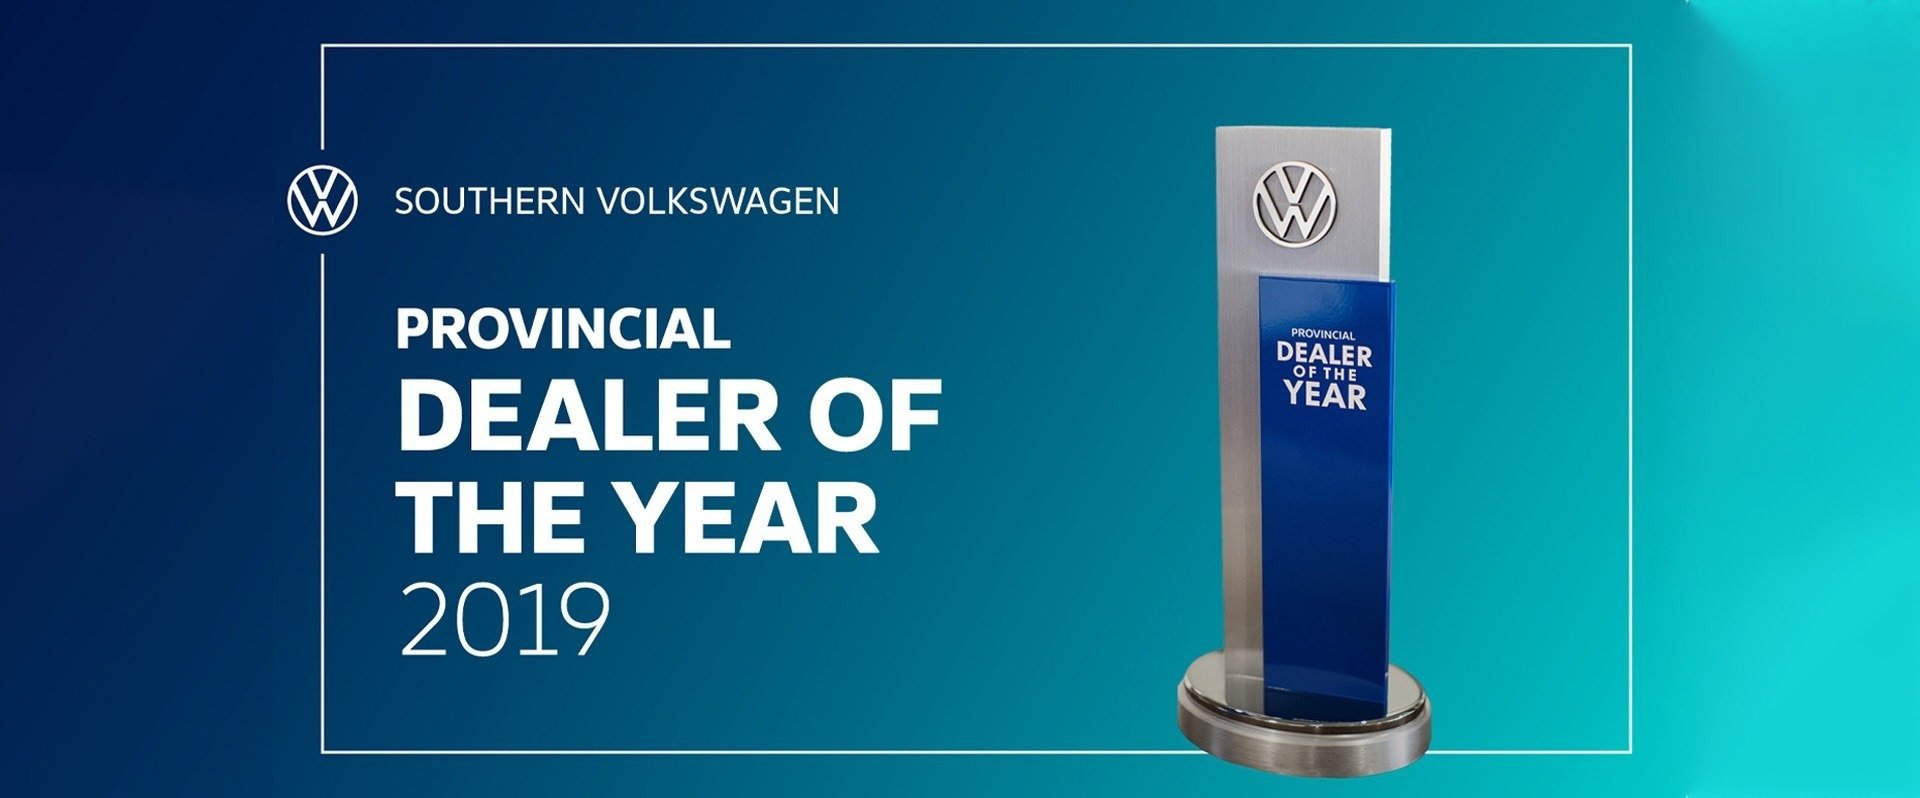 Southern VW - Dealer of the Year 2019